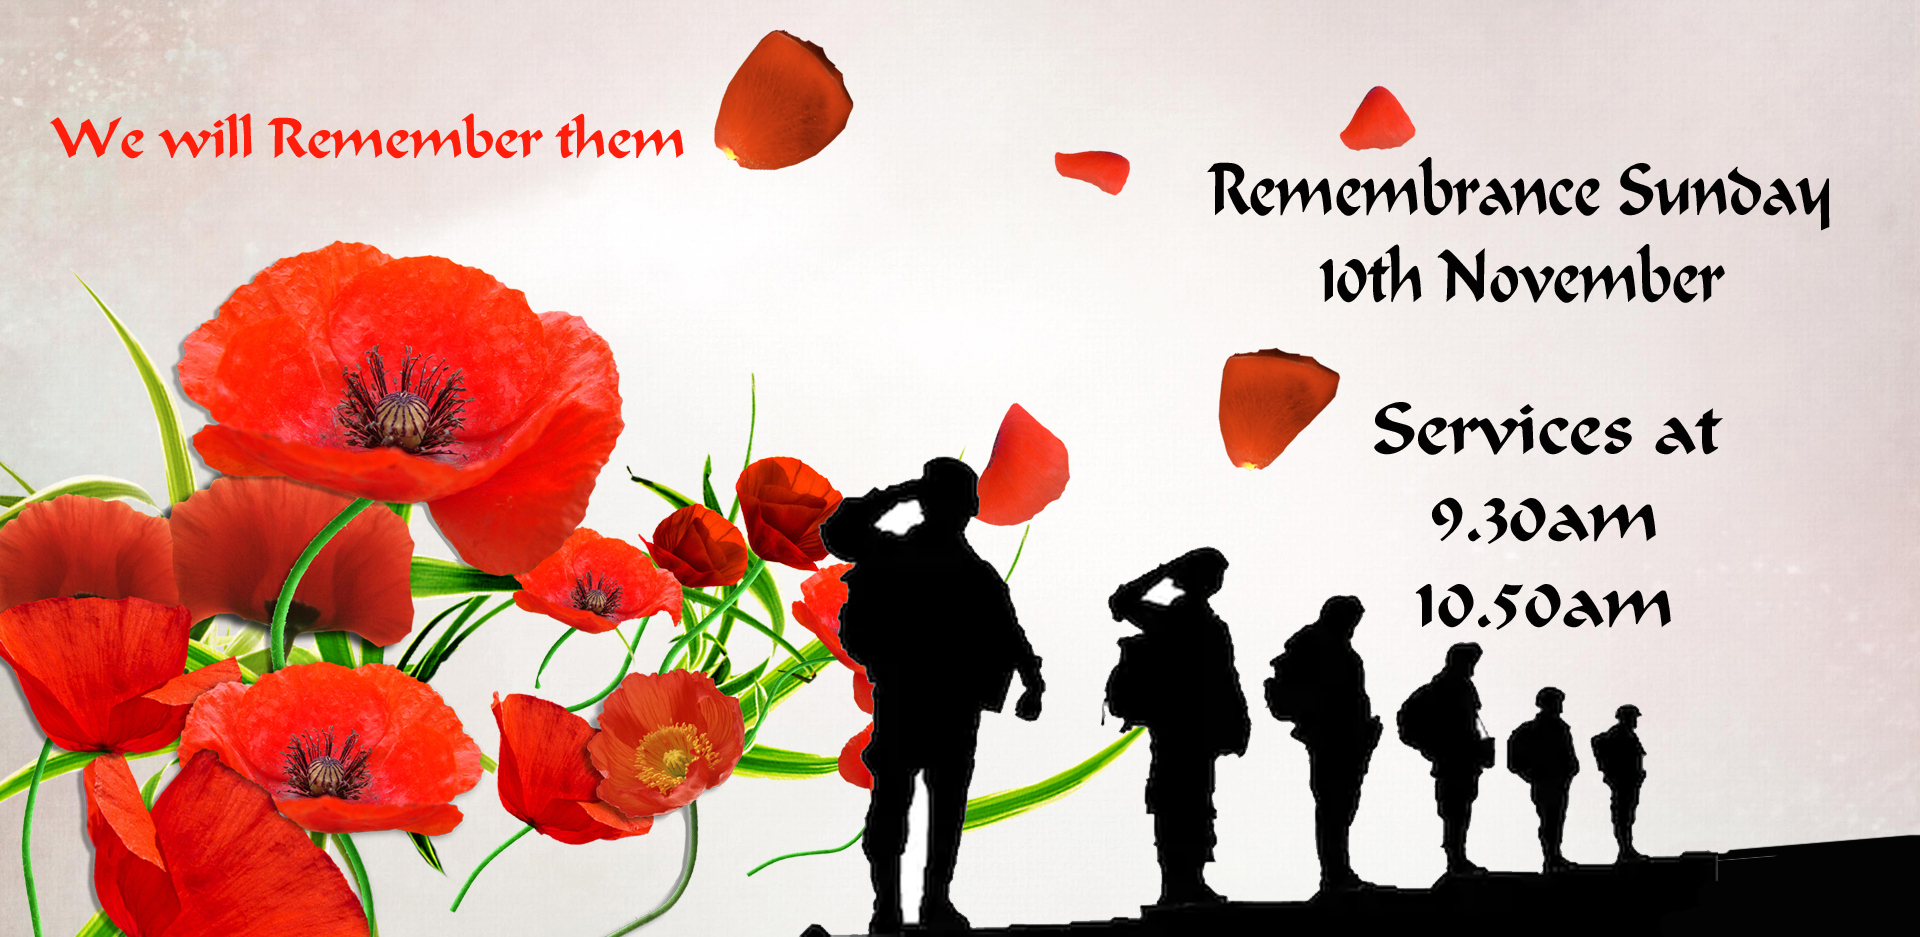 Remembrance Sunday Services - Sunday 10th November at 9.30am and 10.50am